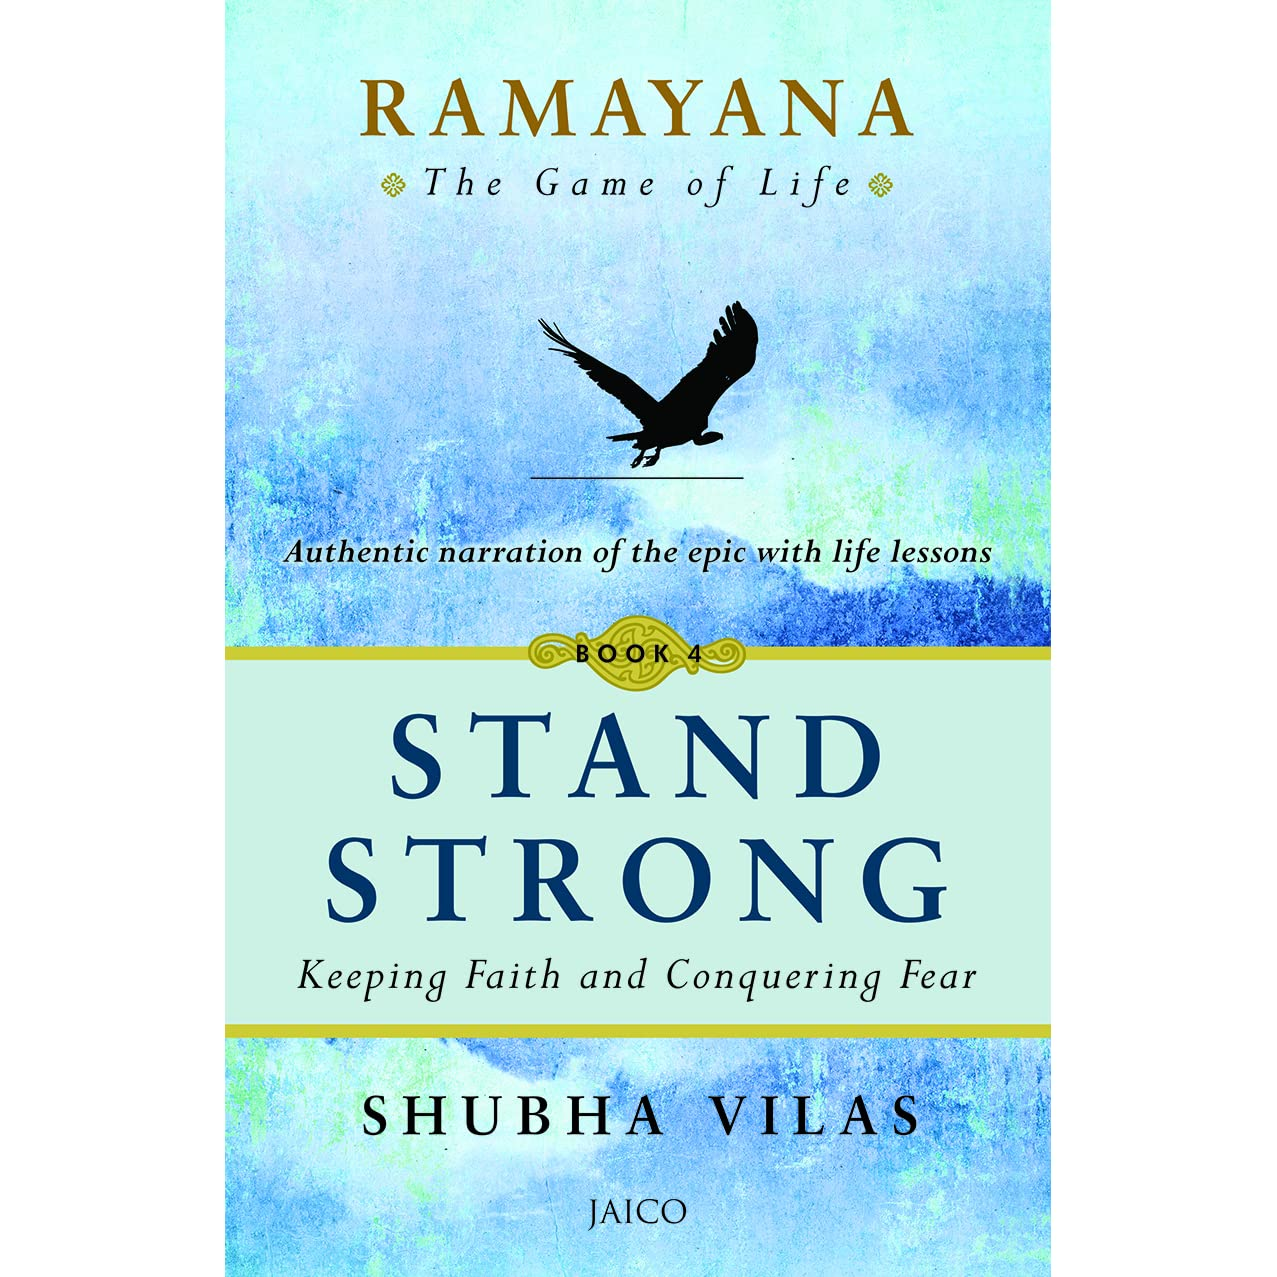 Ramayana the game of life book 4 stand strong by shubha vilas fandeluxe Images